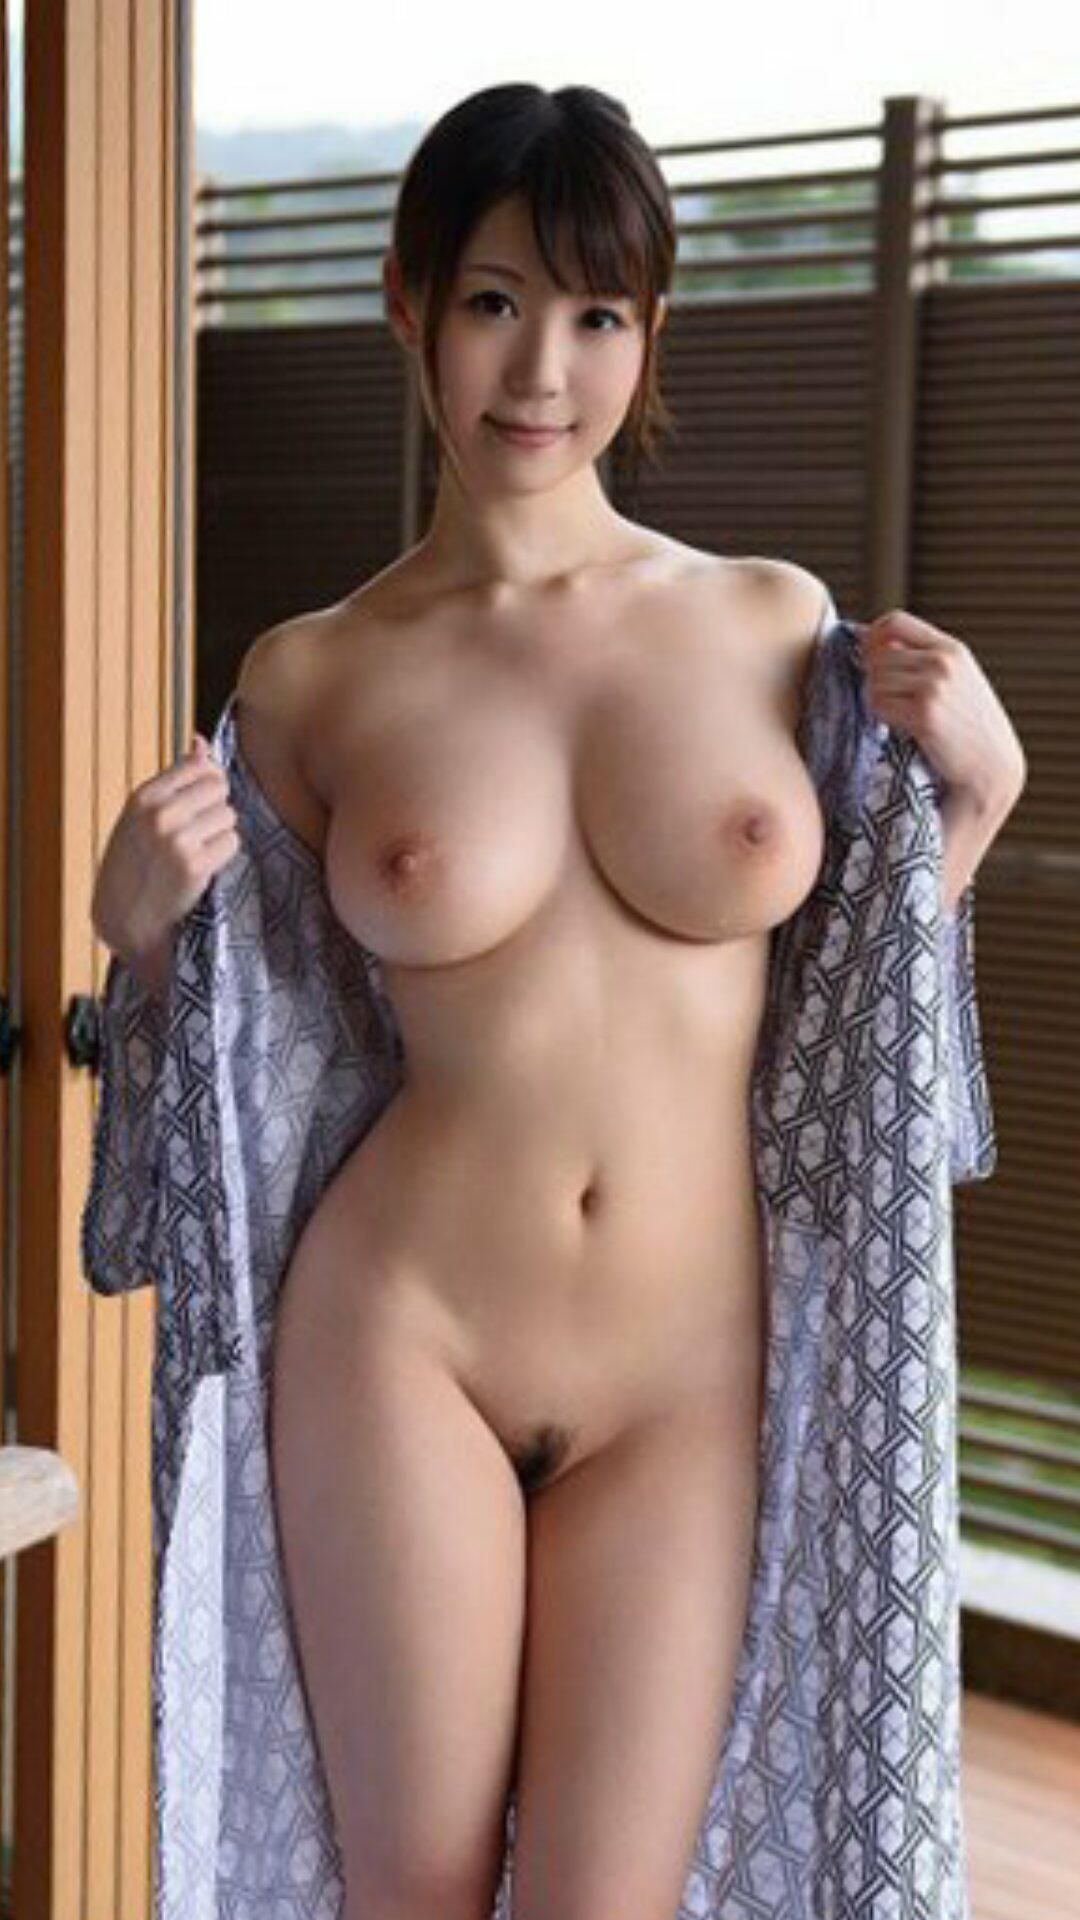 Nude korean girl gallery #15